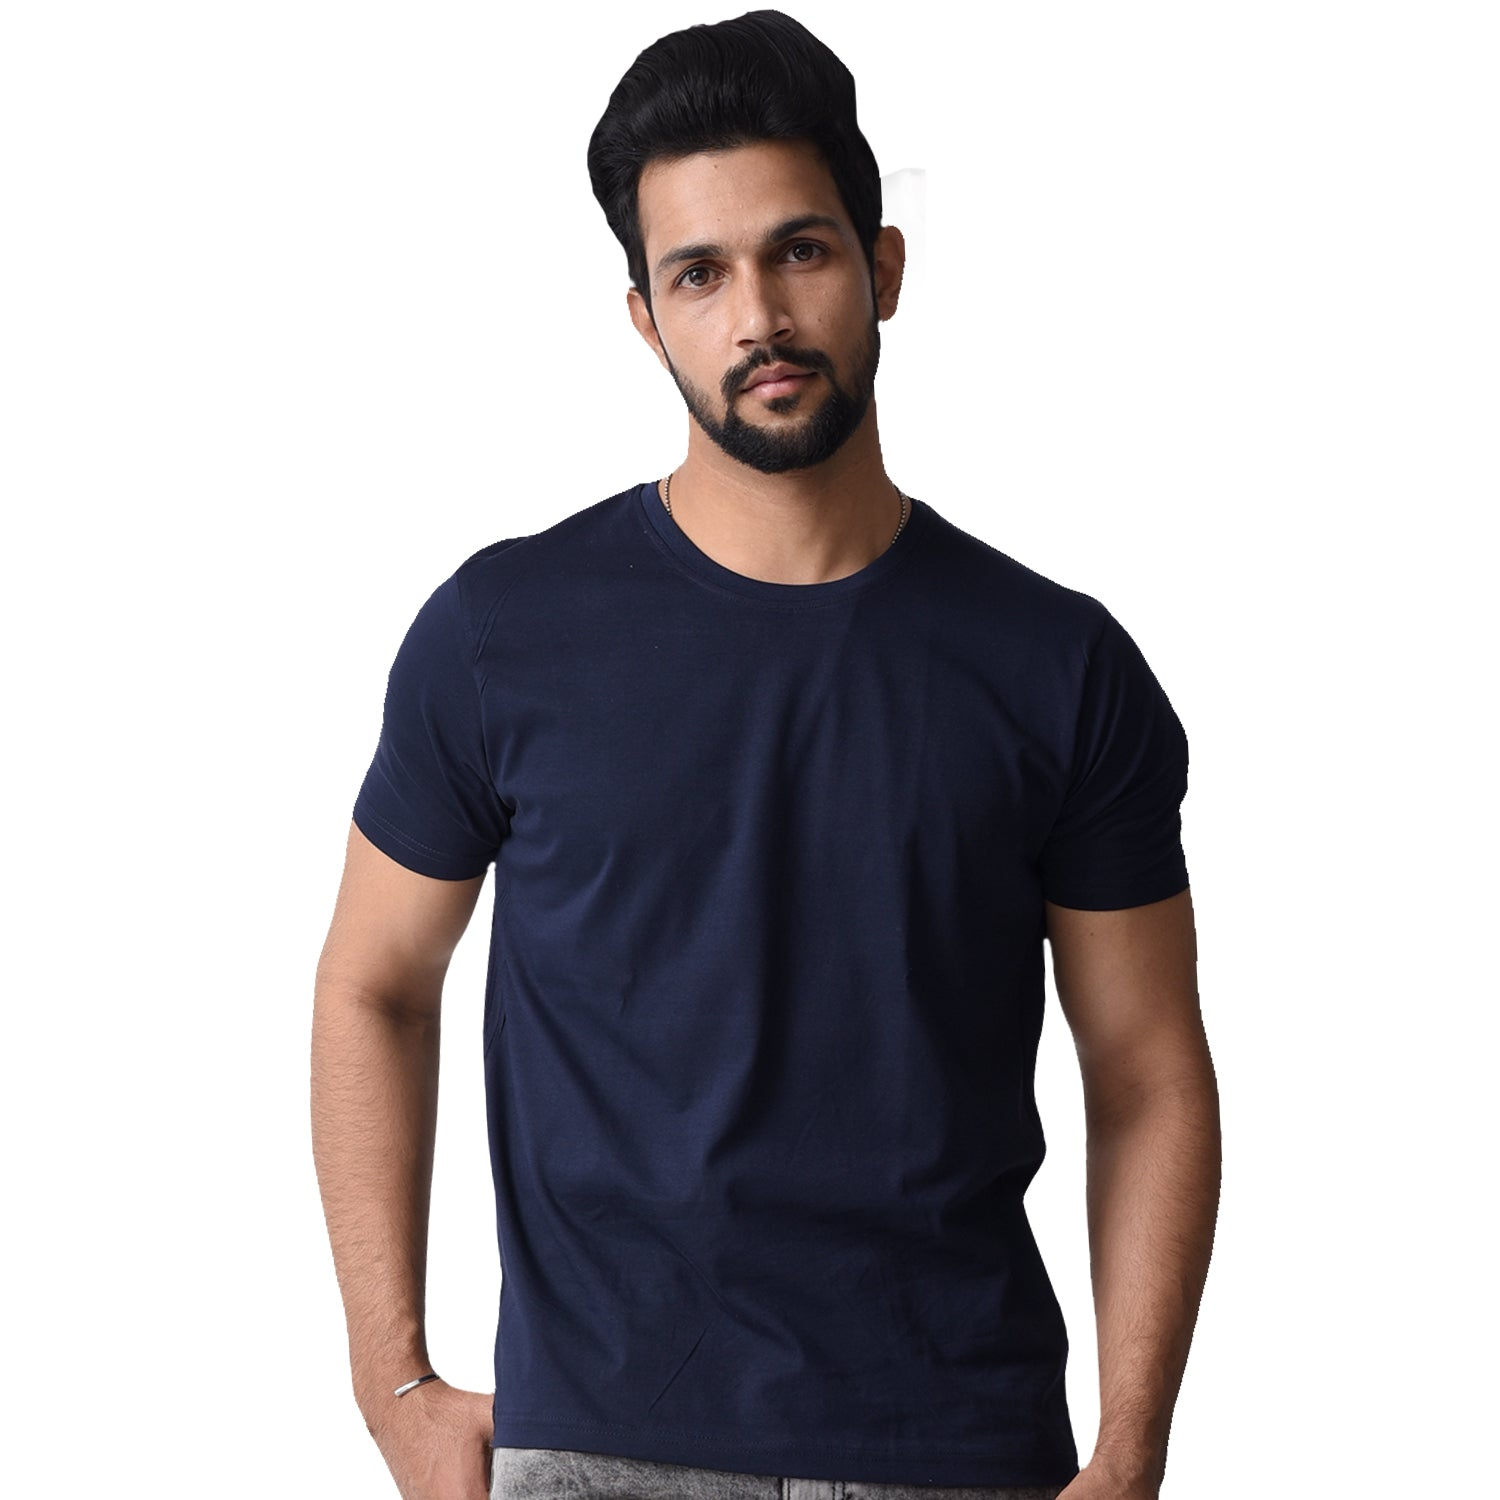 BASIC COMBO TSHIRT NAVY BLUE & WHITE